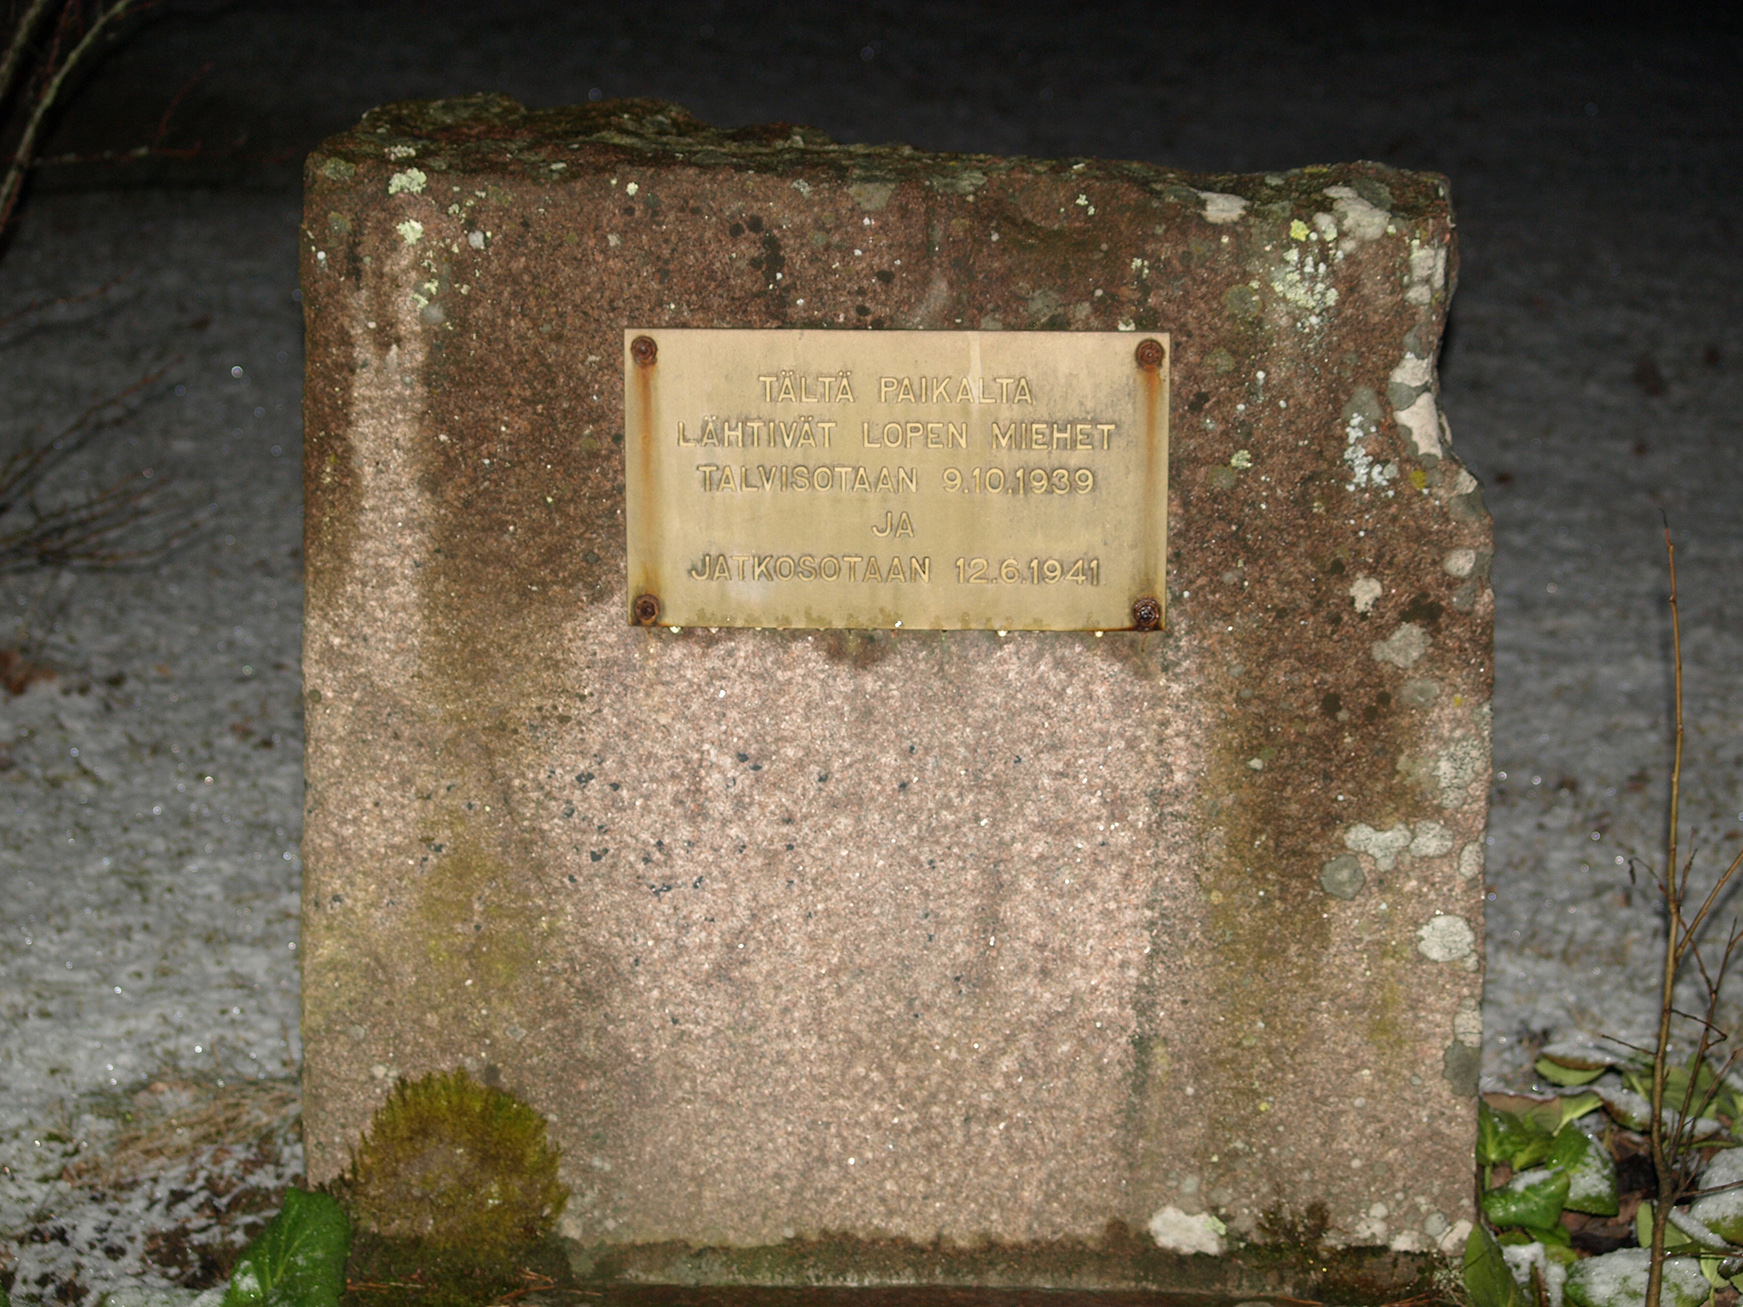 The memorial stone for the soldiers of the Winter War and the Continuation War in Loppi, Finland